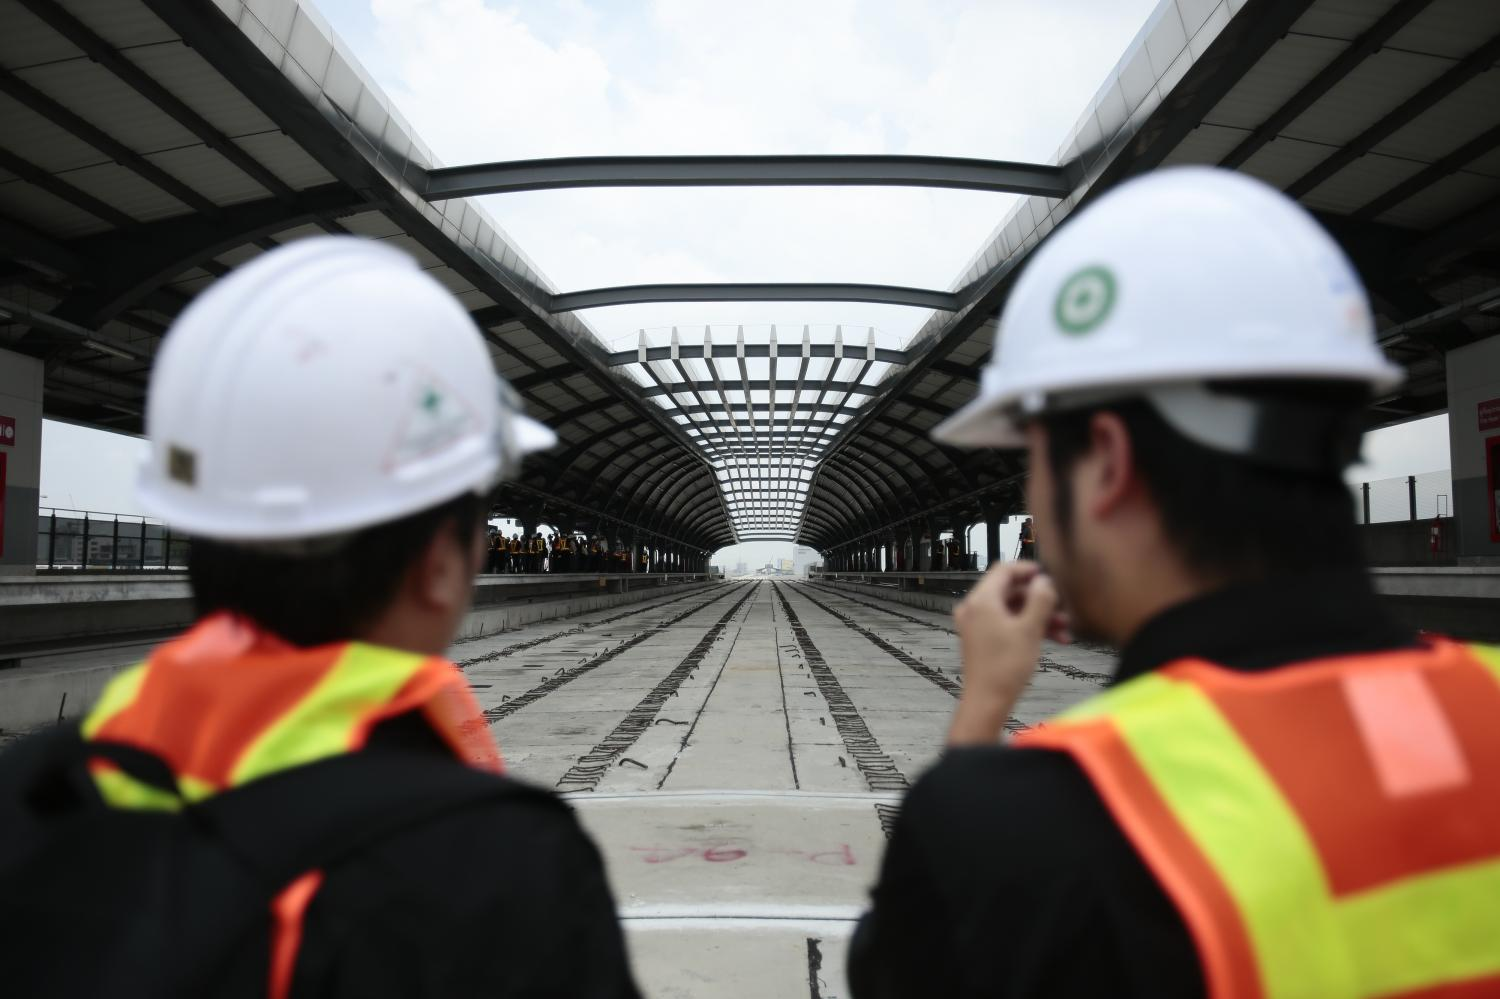 Worker shortage casts doubt on rail projects